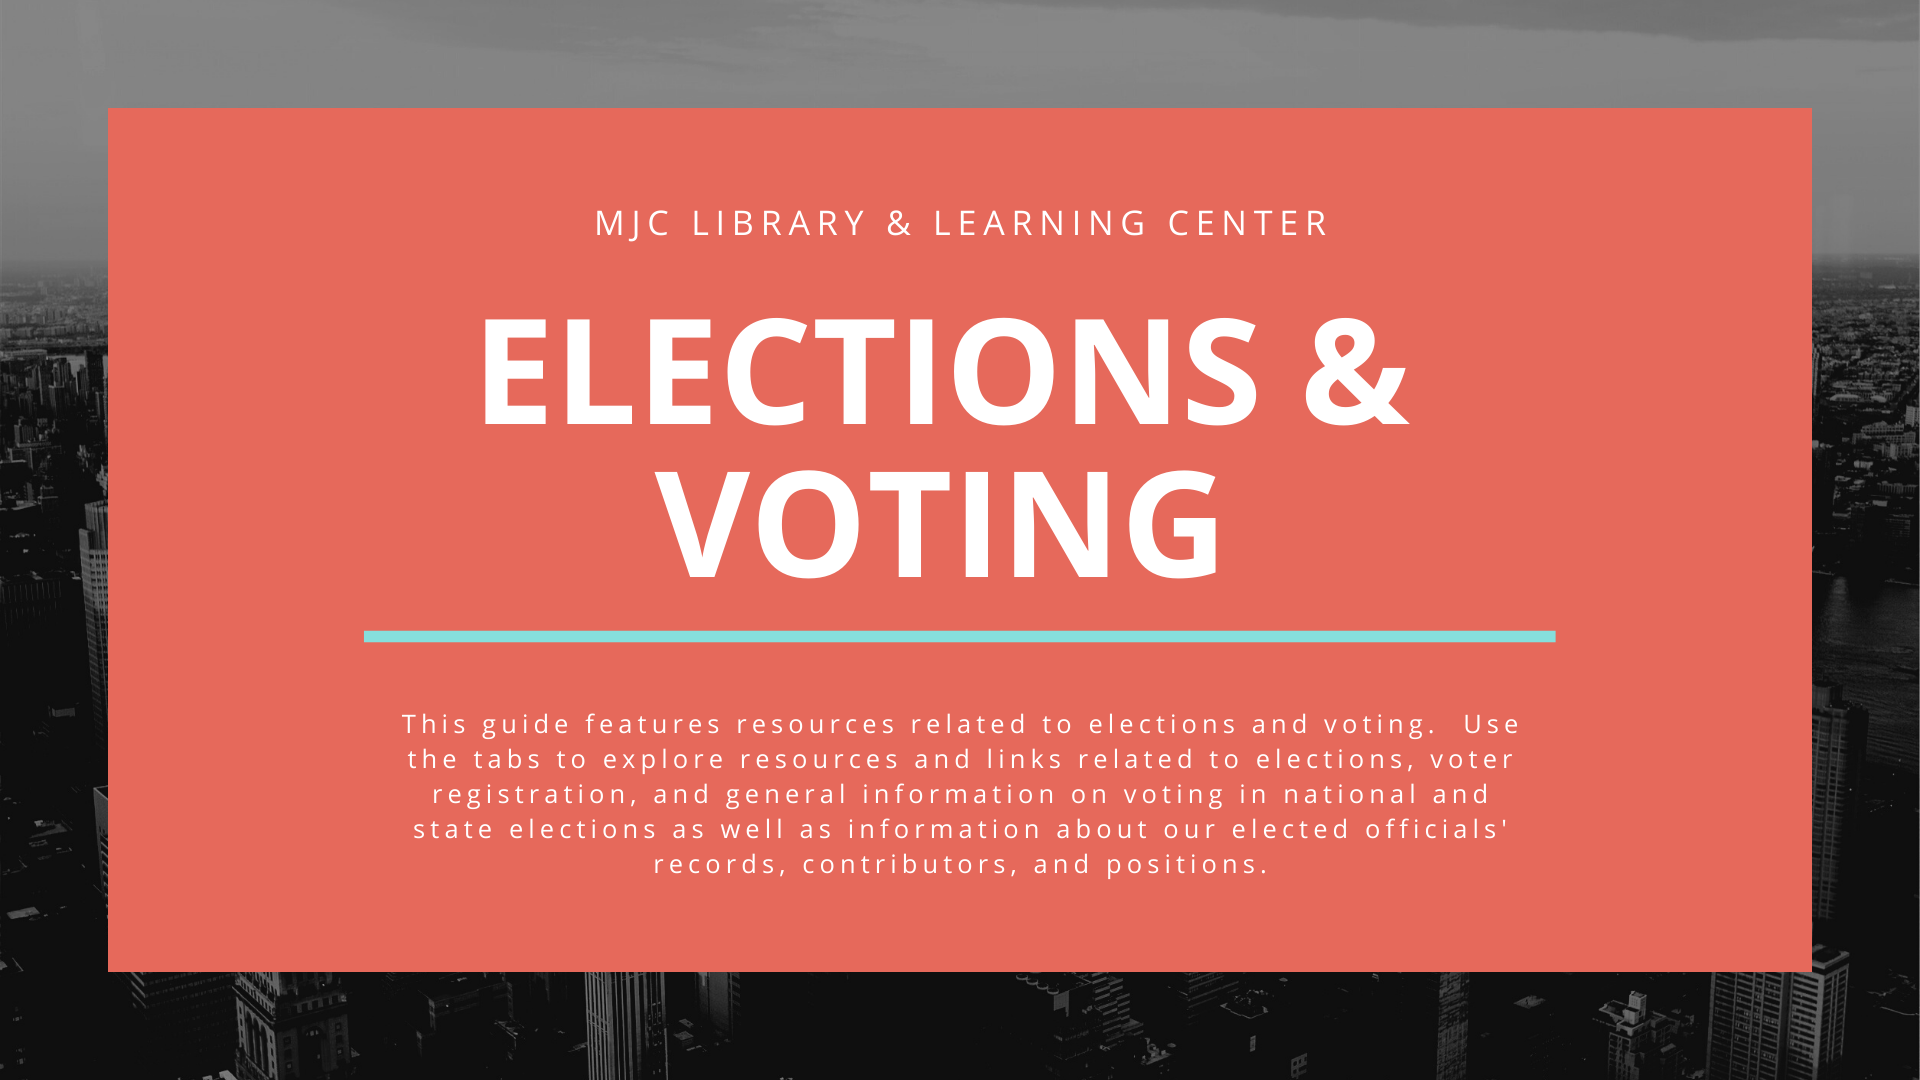 IMAGE WITH TEXT: This research guide features resources related to elections and voting.  Use the tabs to explore resources and links related to the November 2018 election, voter registration, and general information on voting in national and state elections as well as information about our elected officials' records, contributors, and positions.